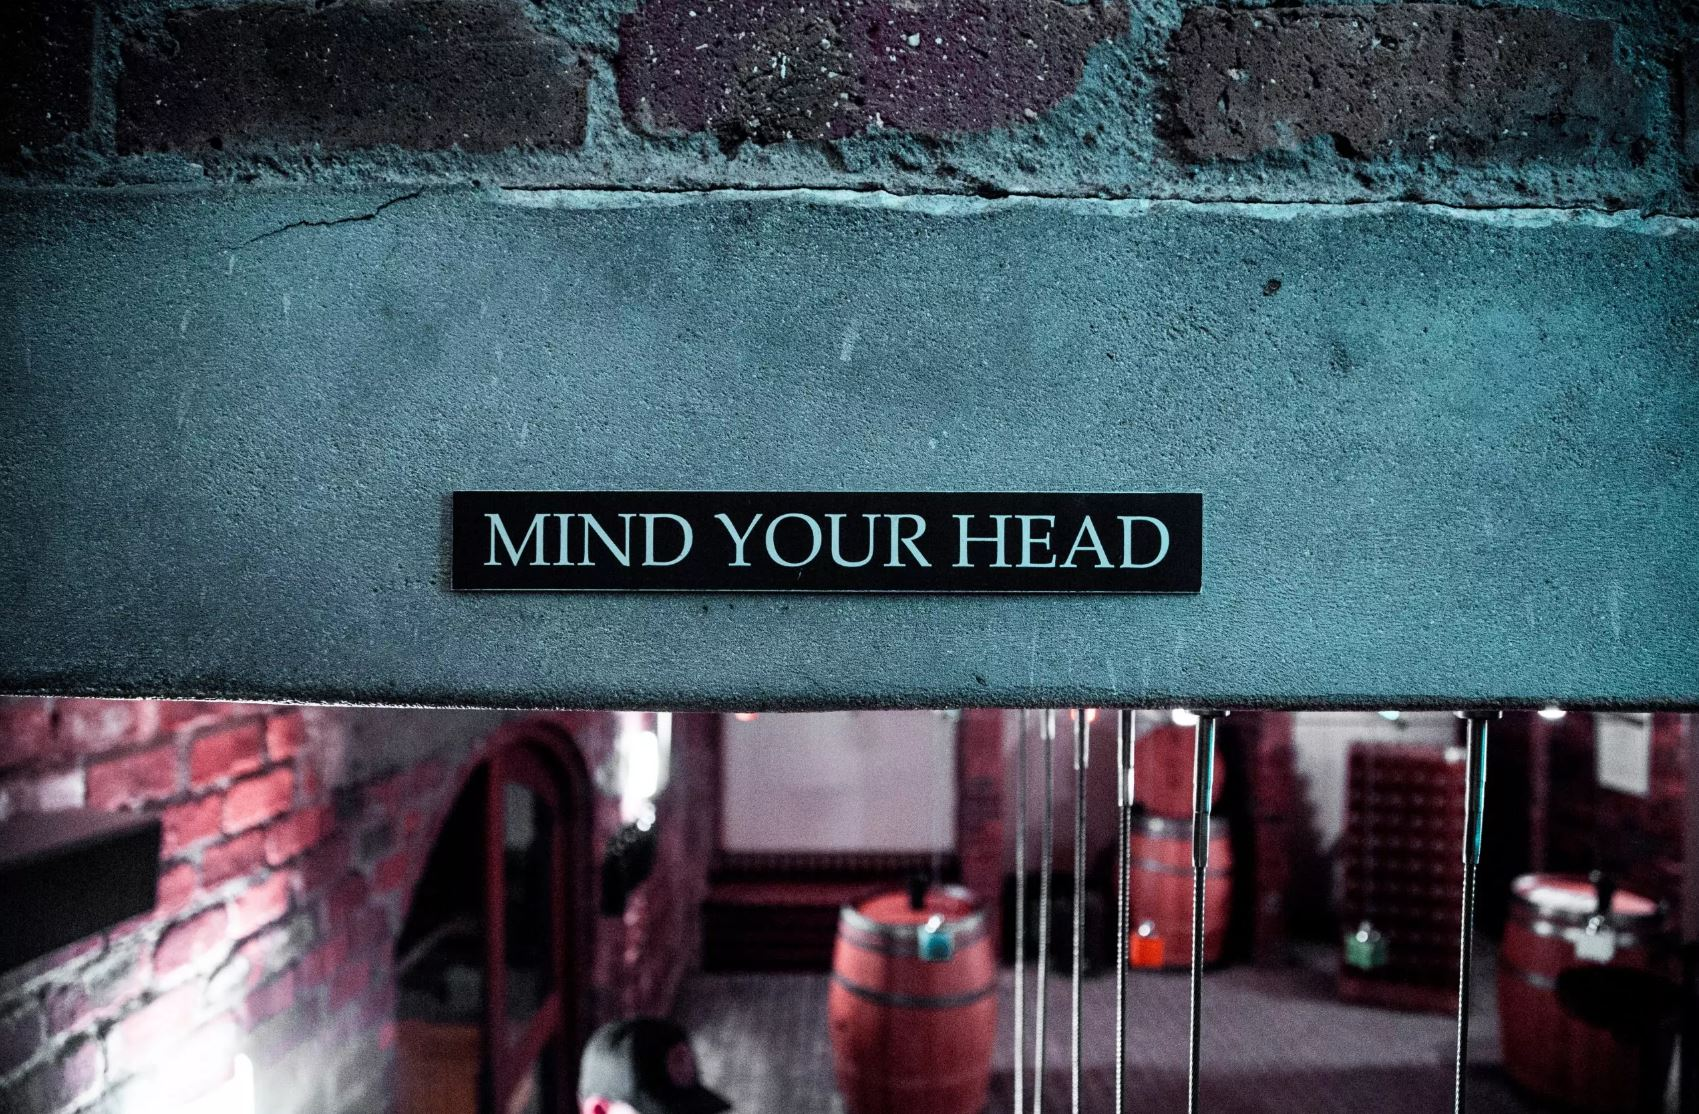 Mind your head message